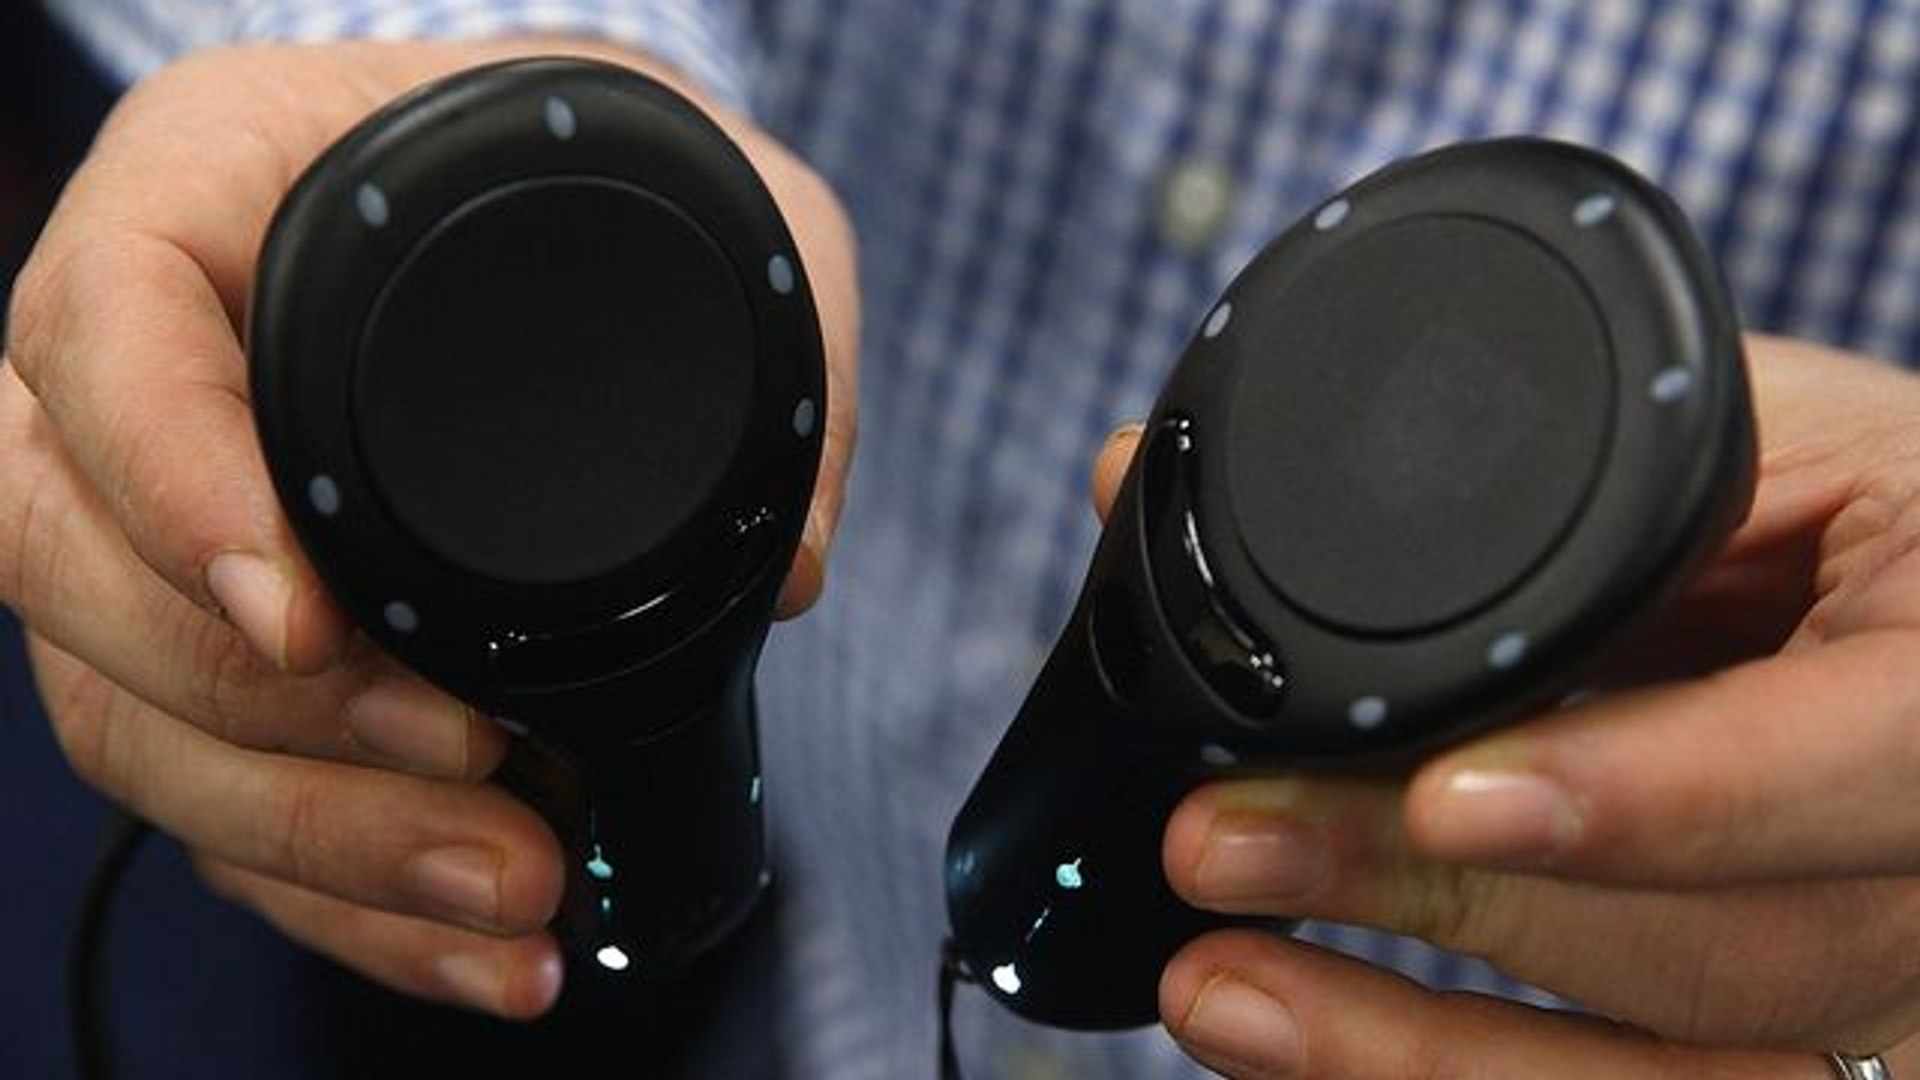 FinchShift controllers want to add full motion to mobile VR at CES 2019